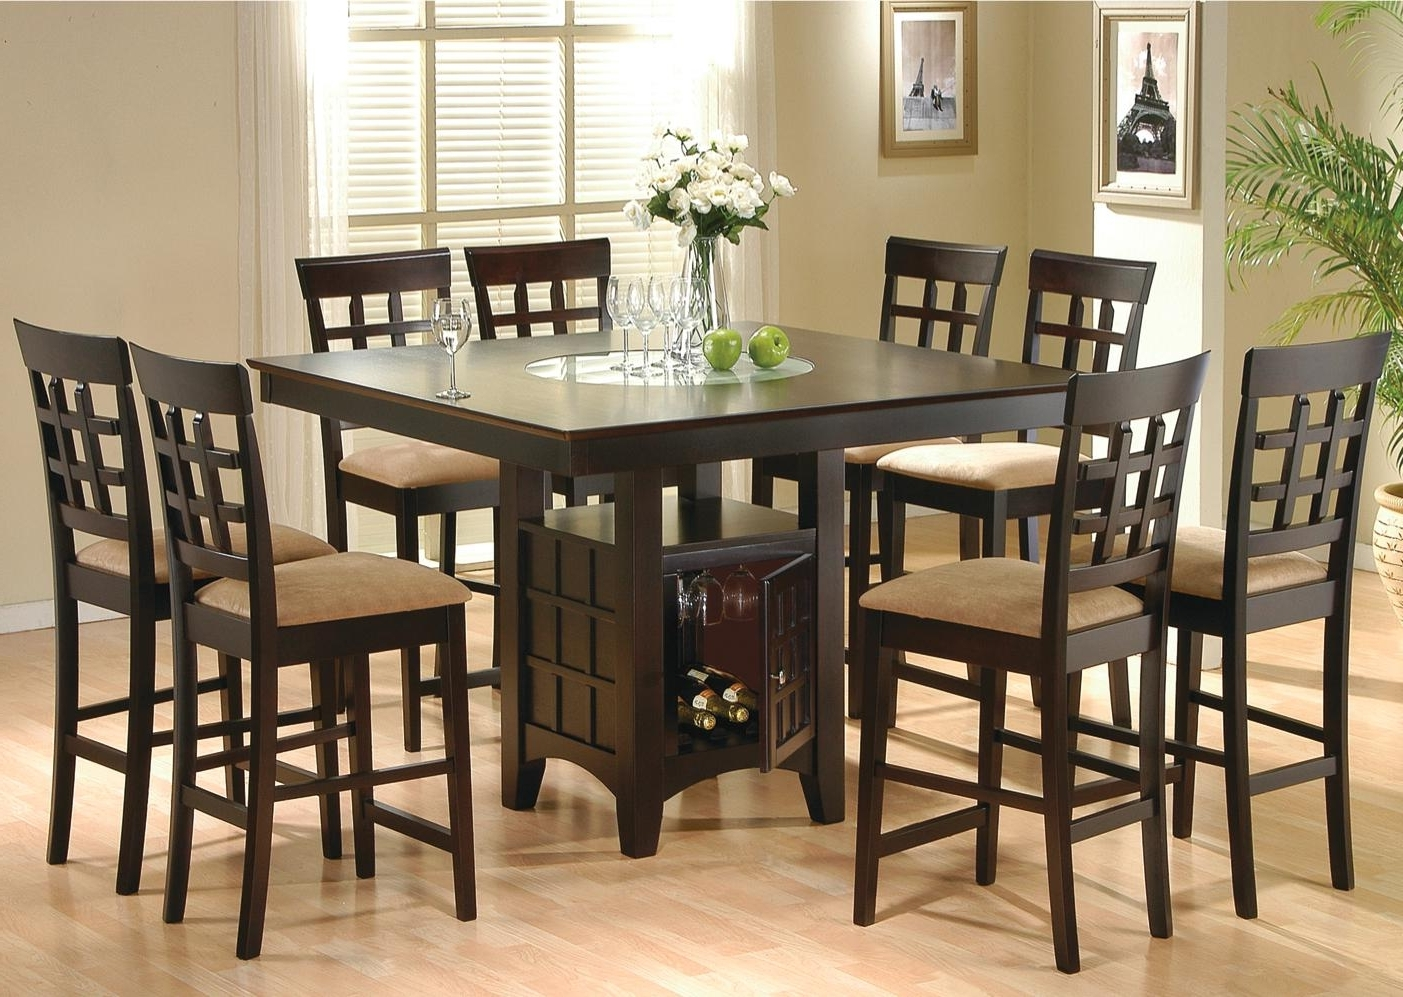 8 Chair Dining Room Set – Www (View 22 of 25)